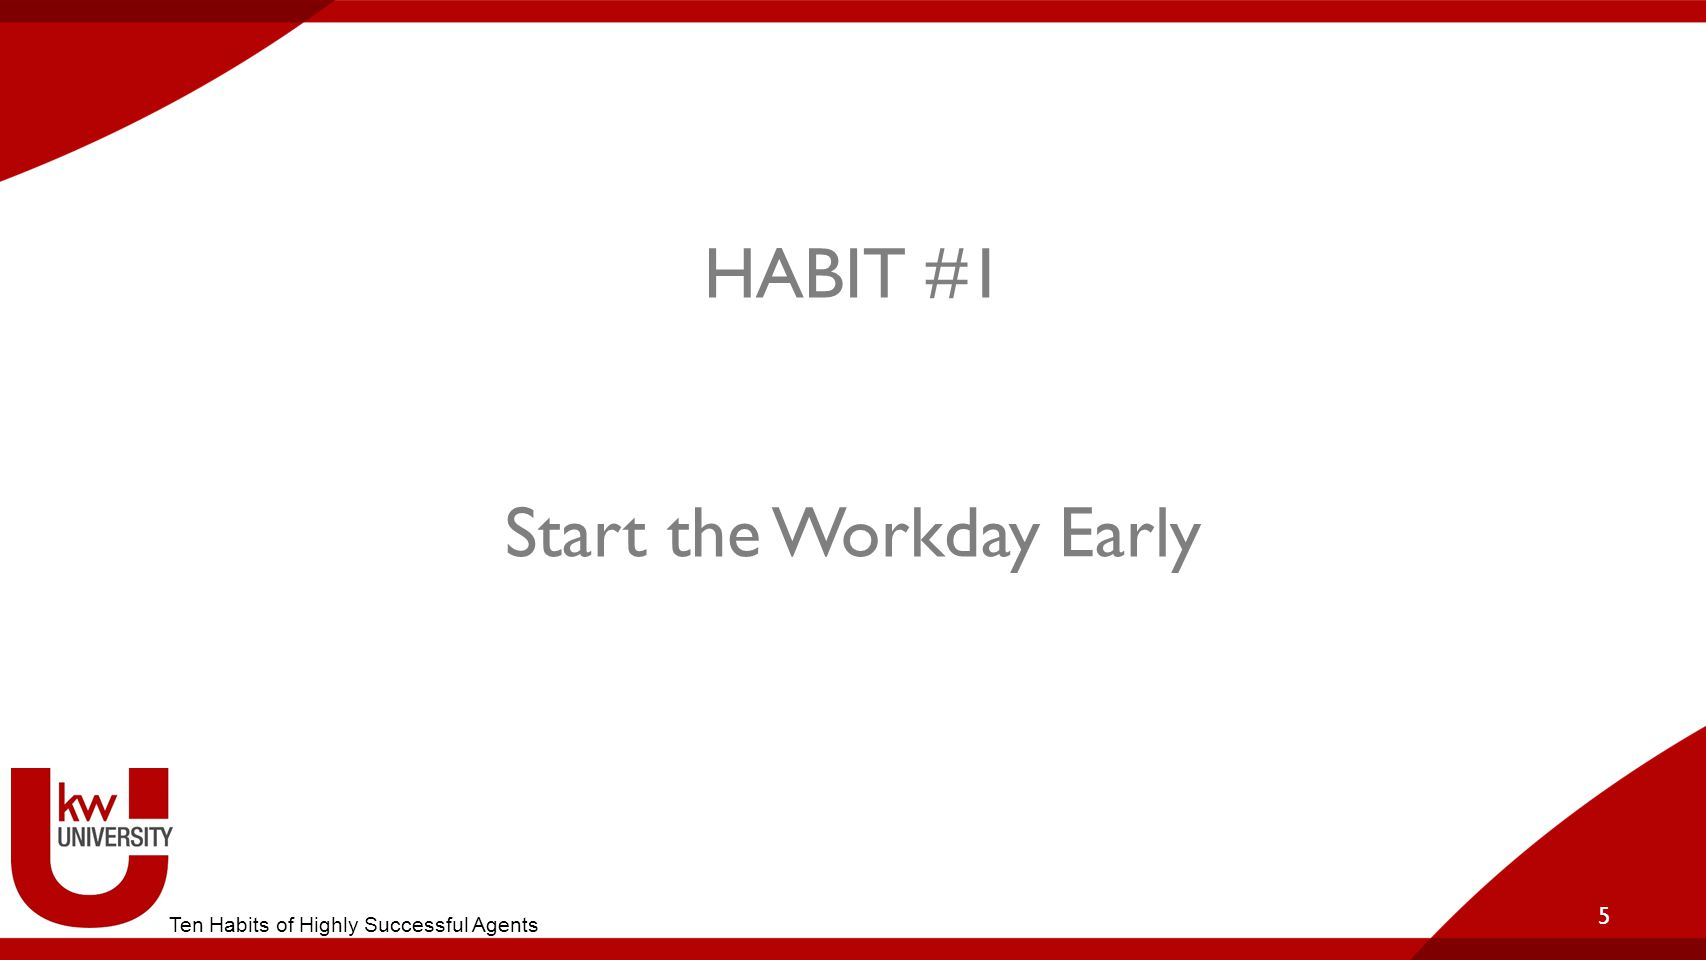 HABIT #1 Start the Workday Early